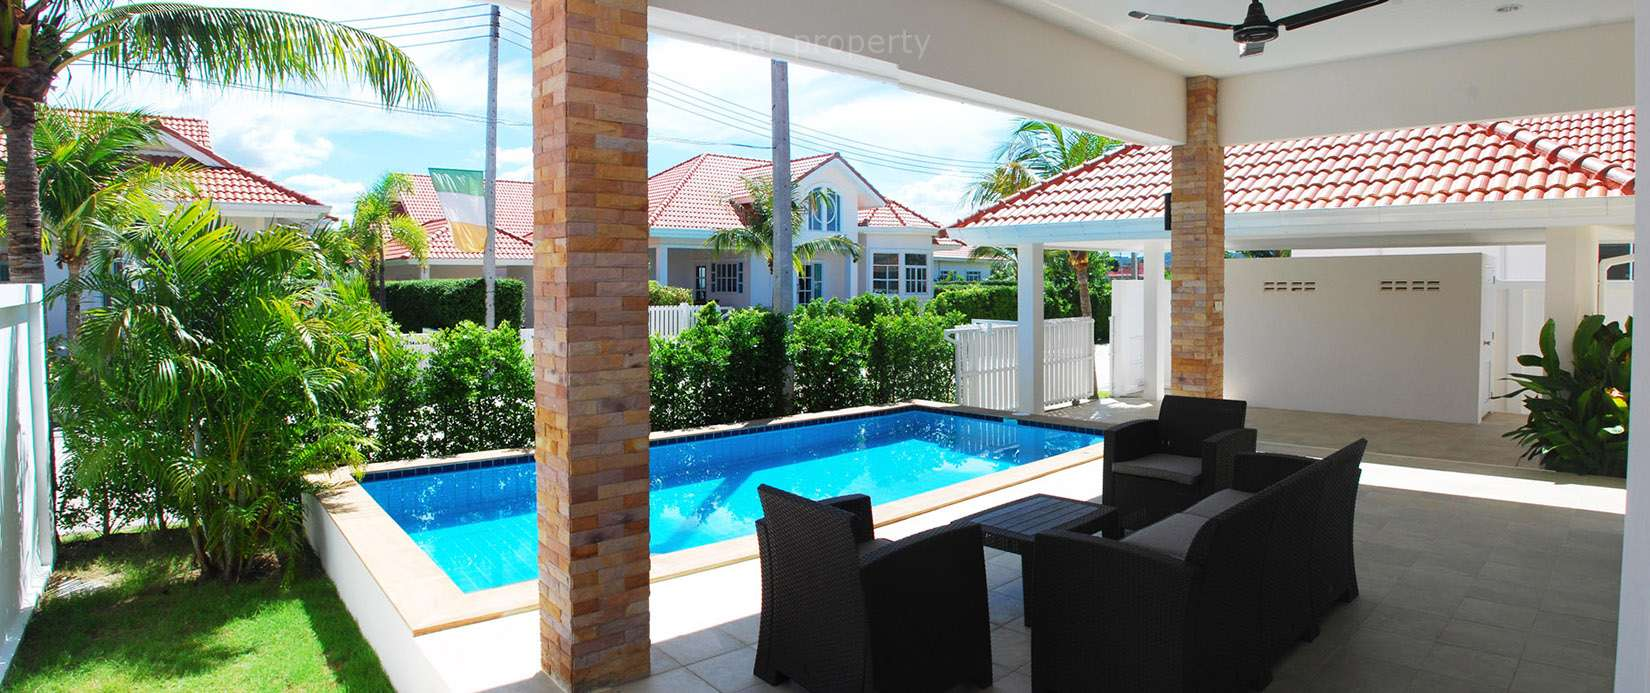 2 bedroom Villa with pool for rent